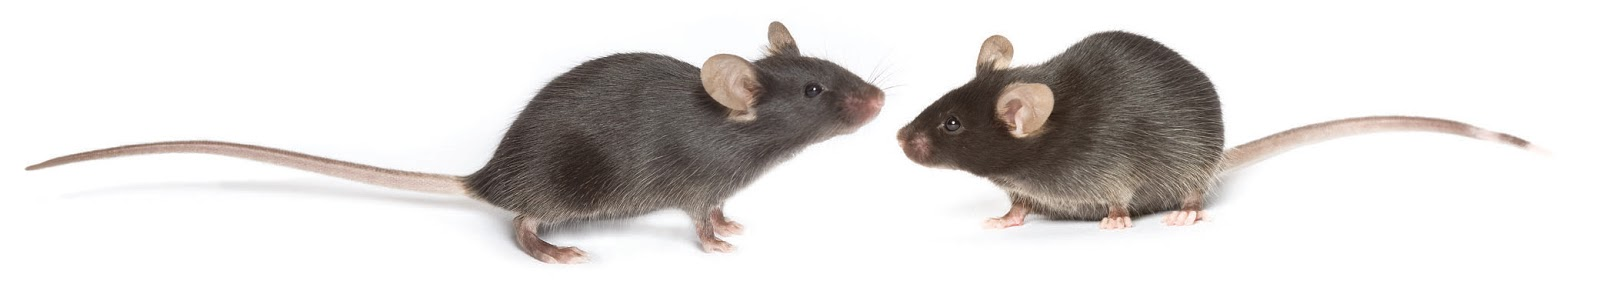 The Black 6 mouse is a mainstay in life extension studies (find out more about the little guys  here )Credit: The Jackson Laboratory